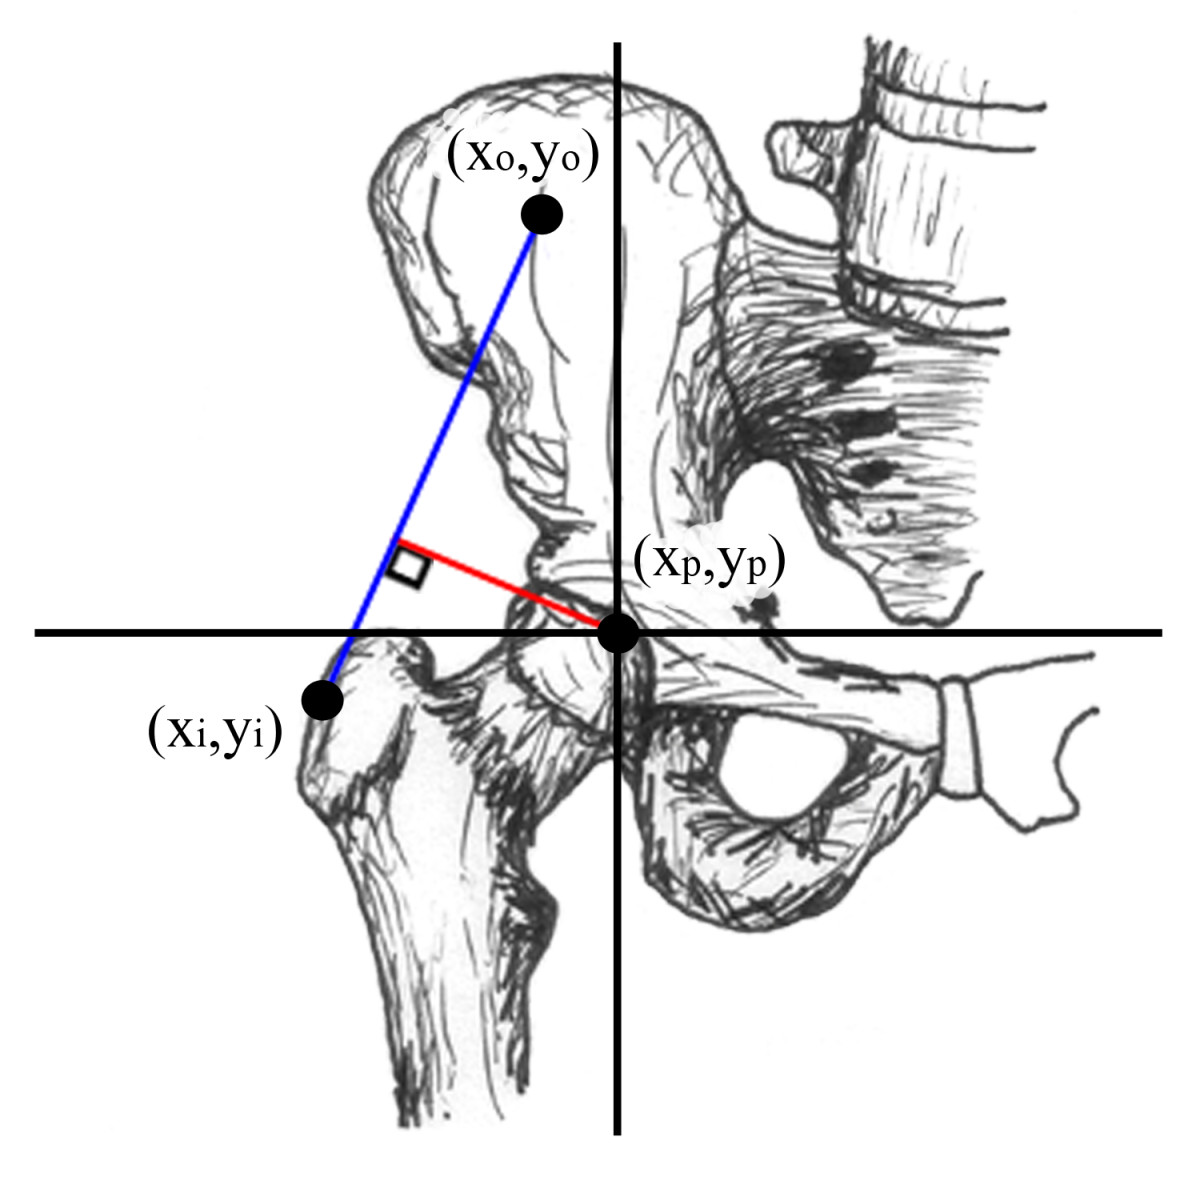 http://static-content.springer.com/image/art%3A10.1186%2F1749-799X-6-6/MediaObjects/13018_2010_Article_241_Fig1_HTML.jpg